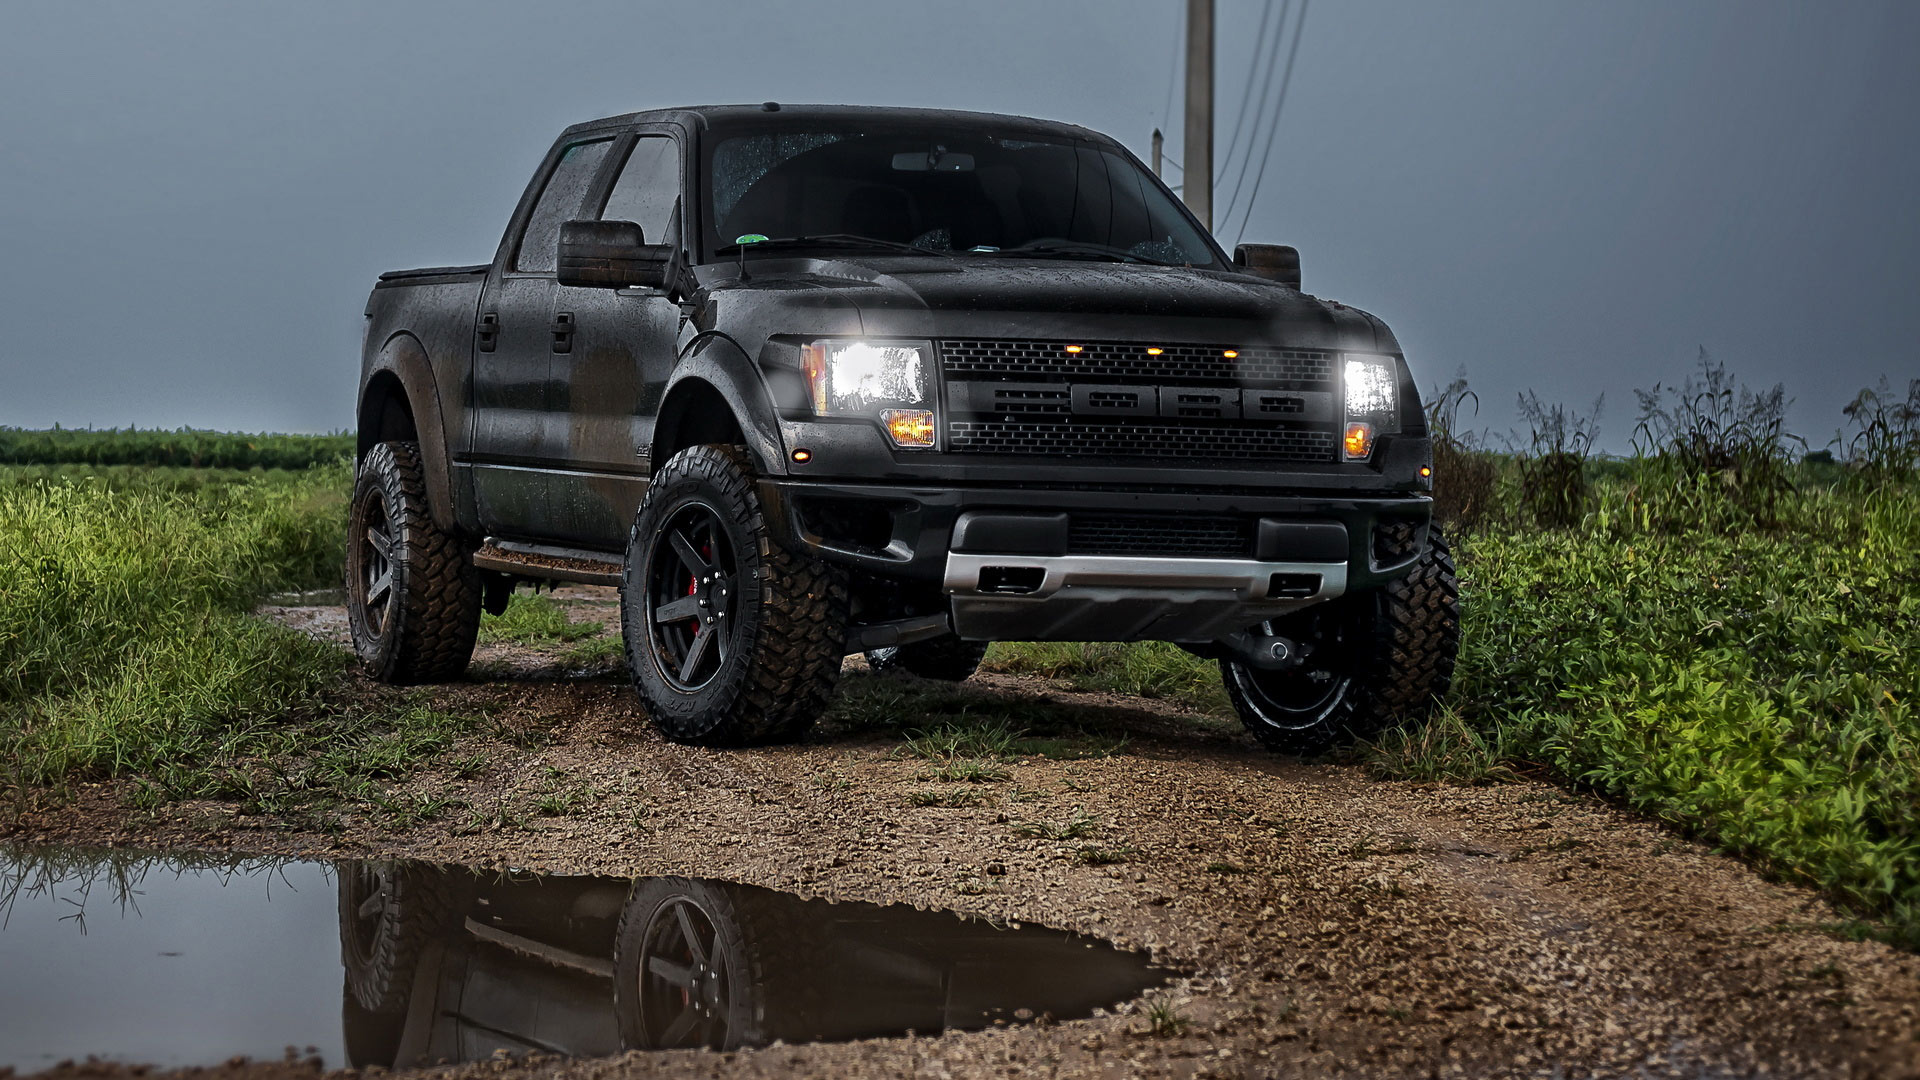 Ford raptor wallpaper 35287 1920x1080 px hdwallsource ford raptor wallpaper 35287 voltagebd Gallery